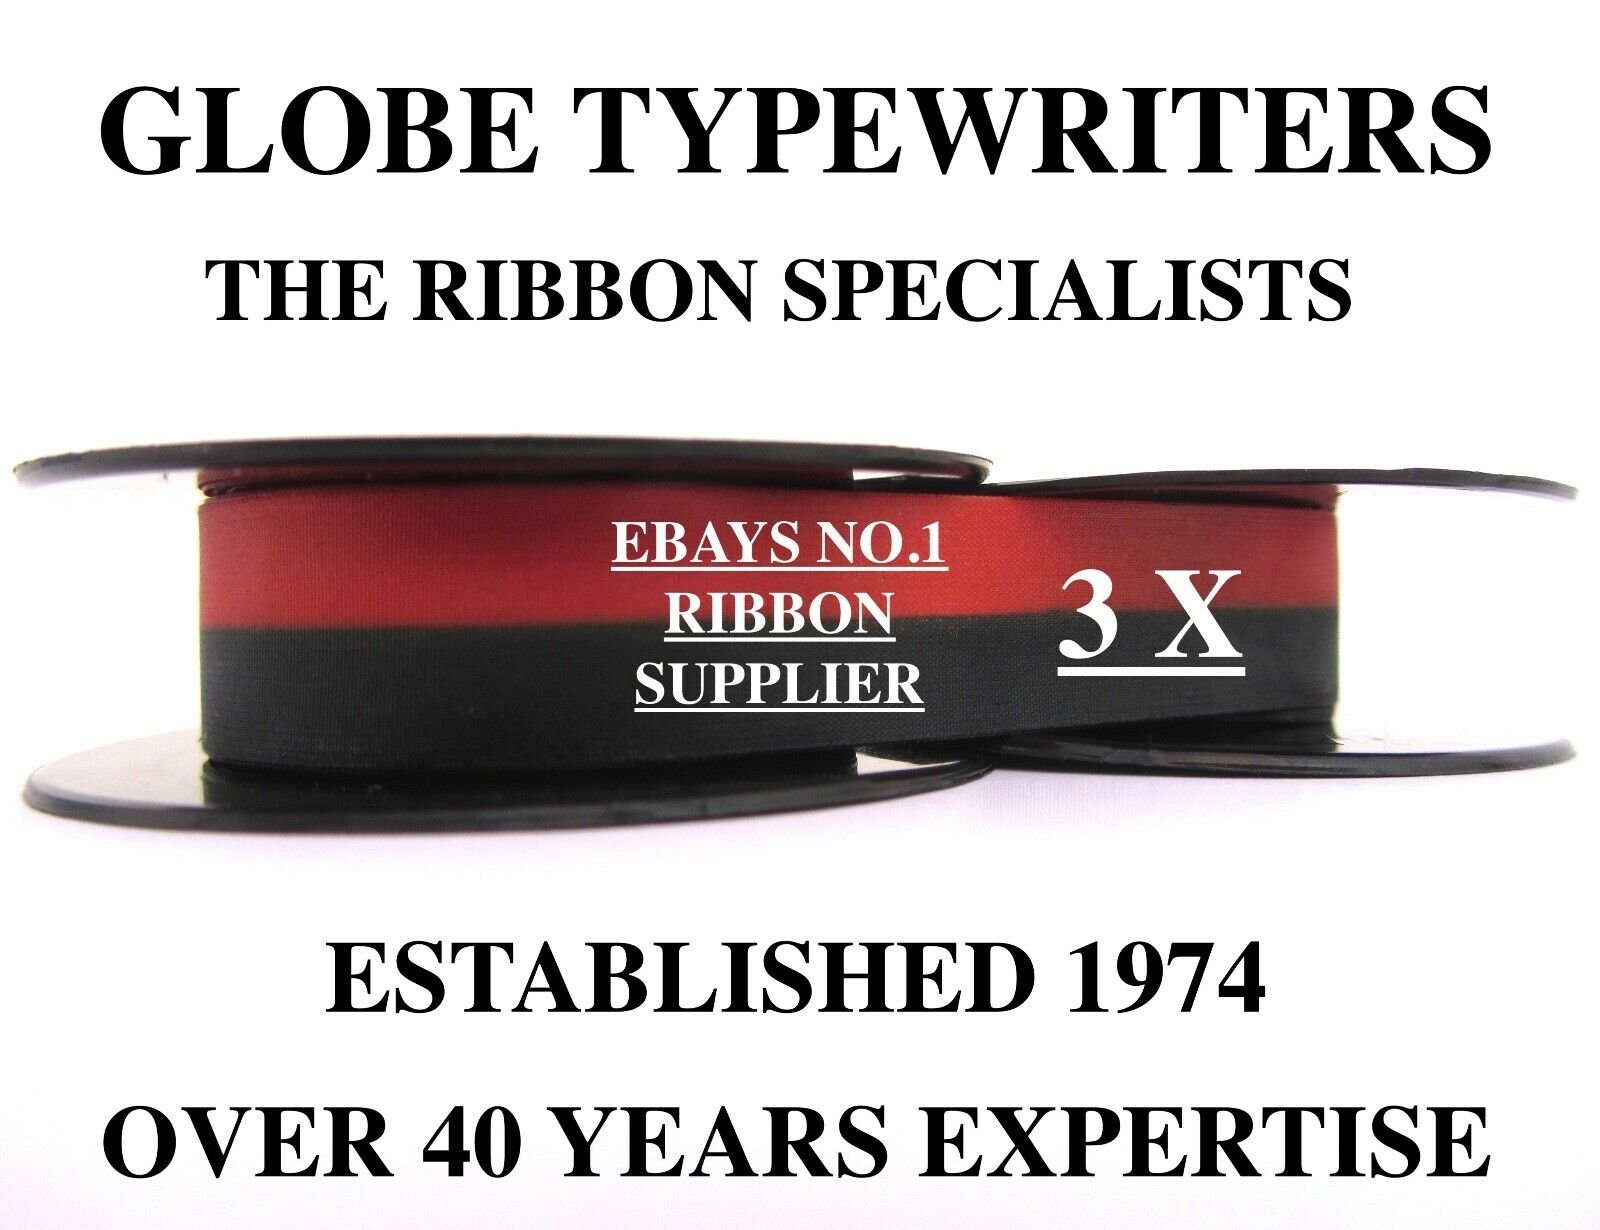 3 x OLYMPIA *BLACK/RED* TYPEWRITER RIBBONS FOR MANUAL MACHINES *TOP QUALITY* 10M